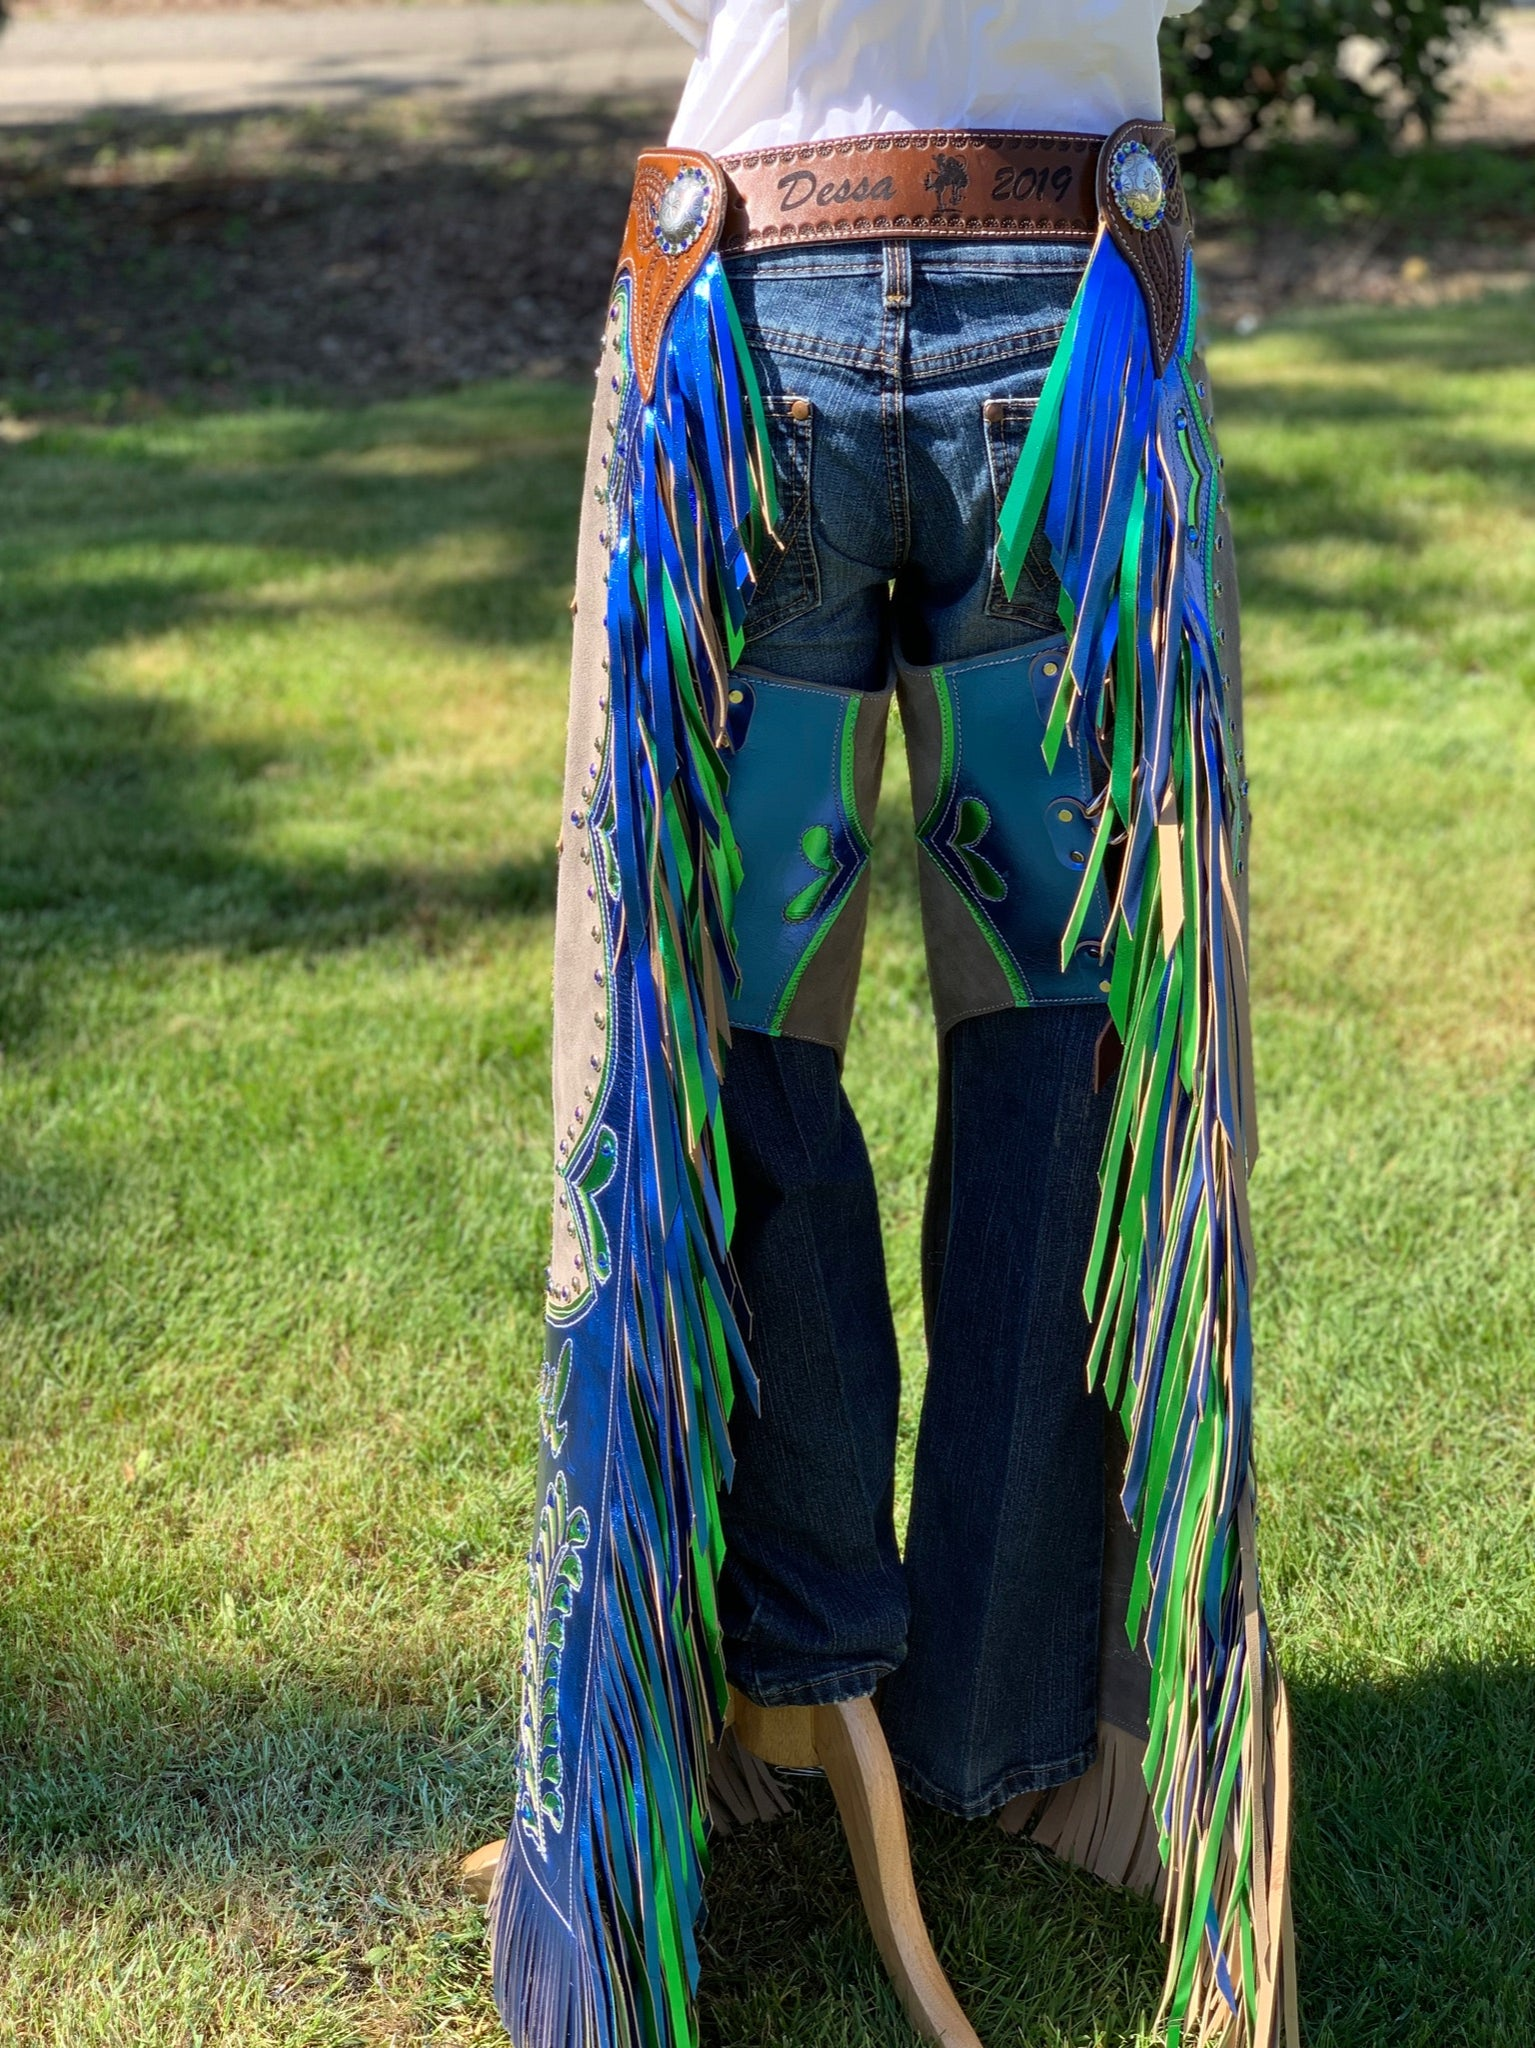 Custom Order Chaps-Please contact us to place your order - Pistol Annie's Boutique